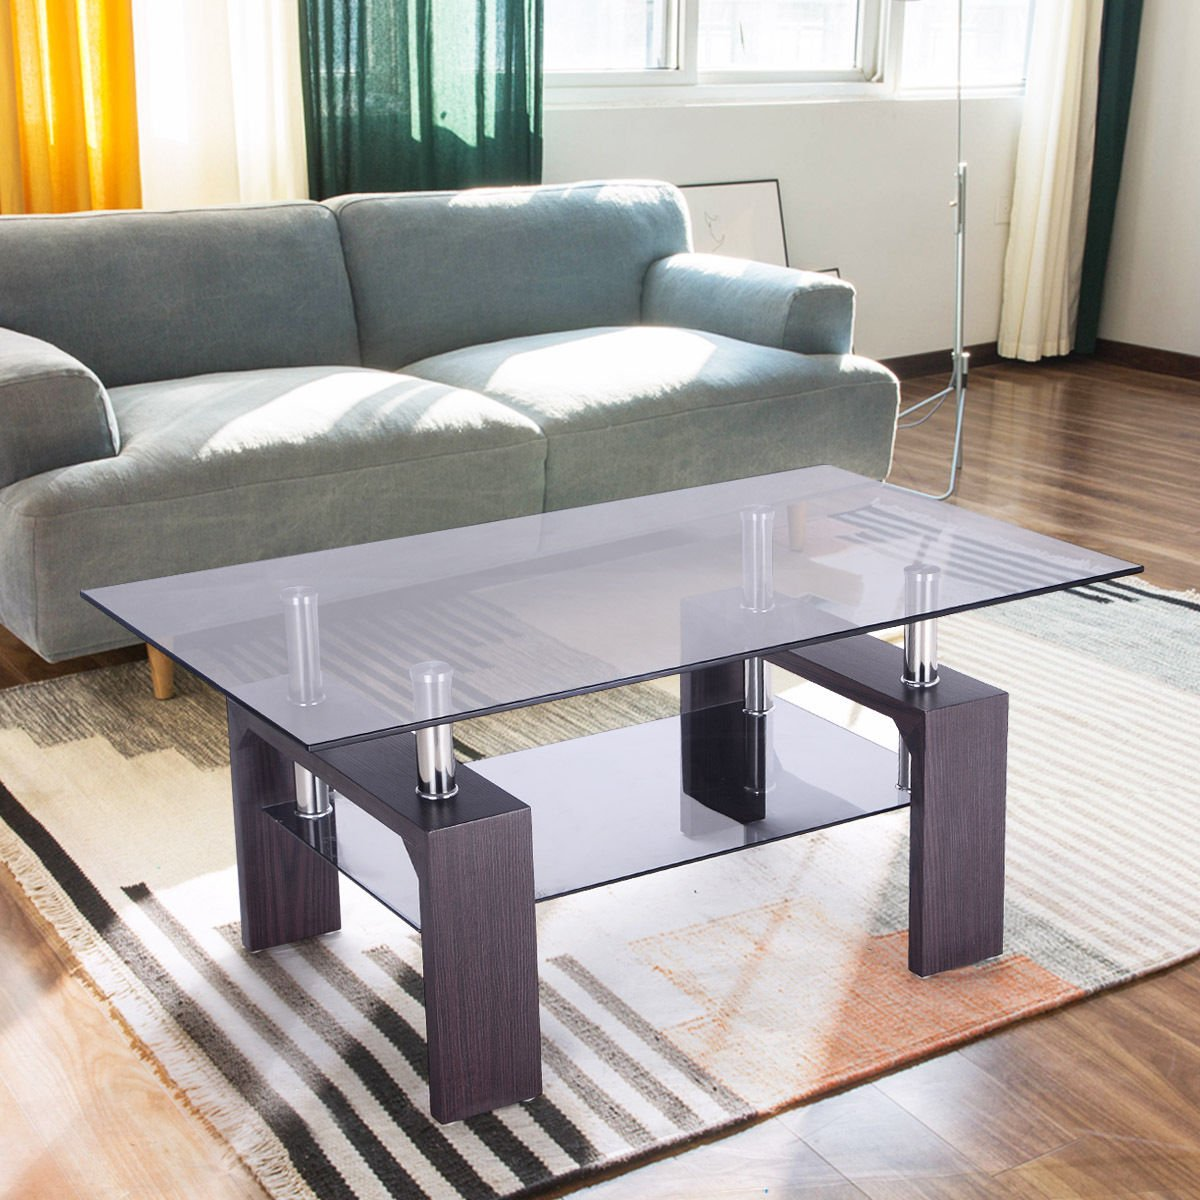 40 Incredibly Cheap Coffee Tables You Can Buy for Under $100 ...